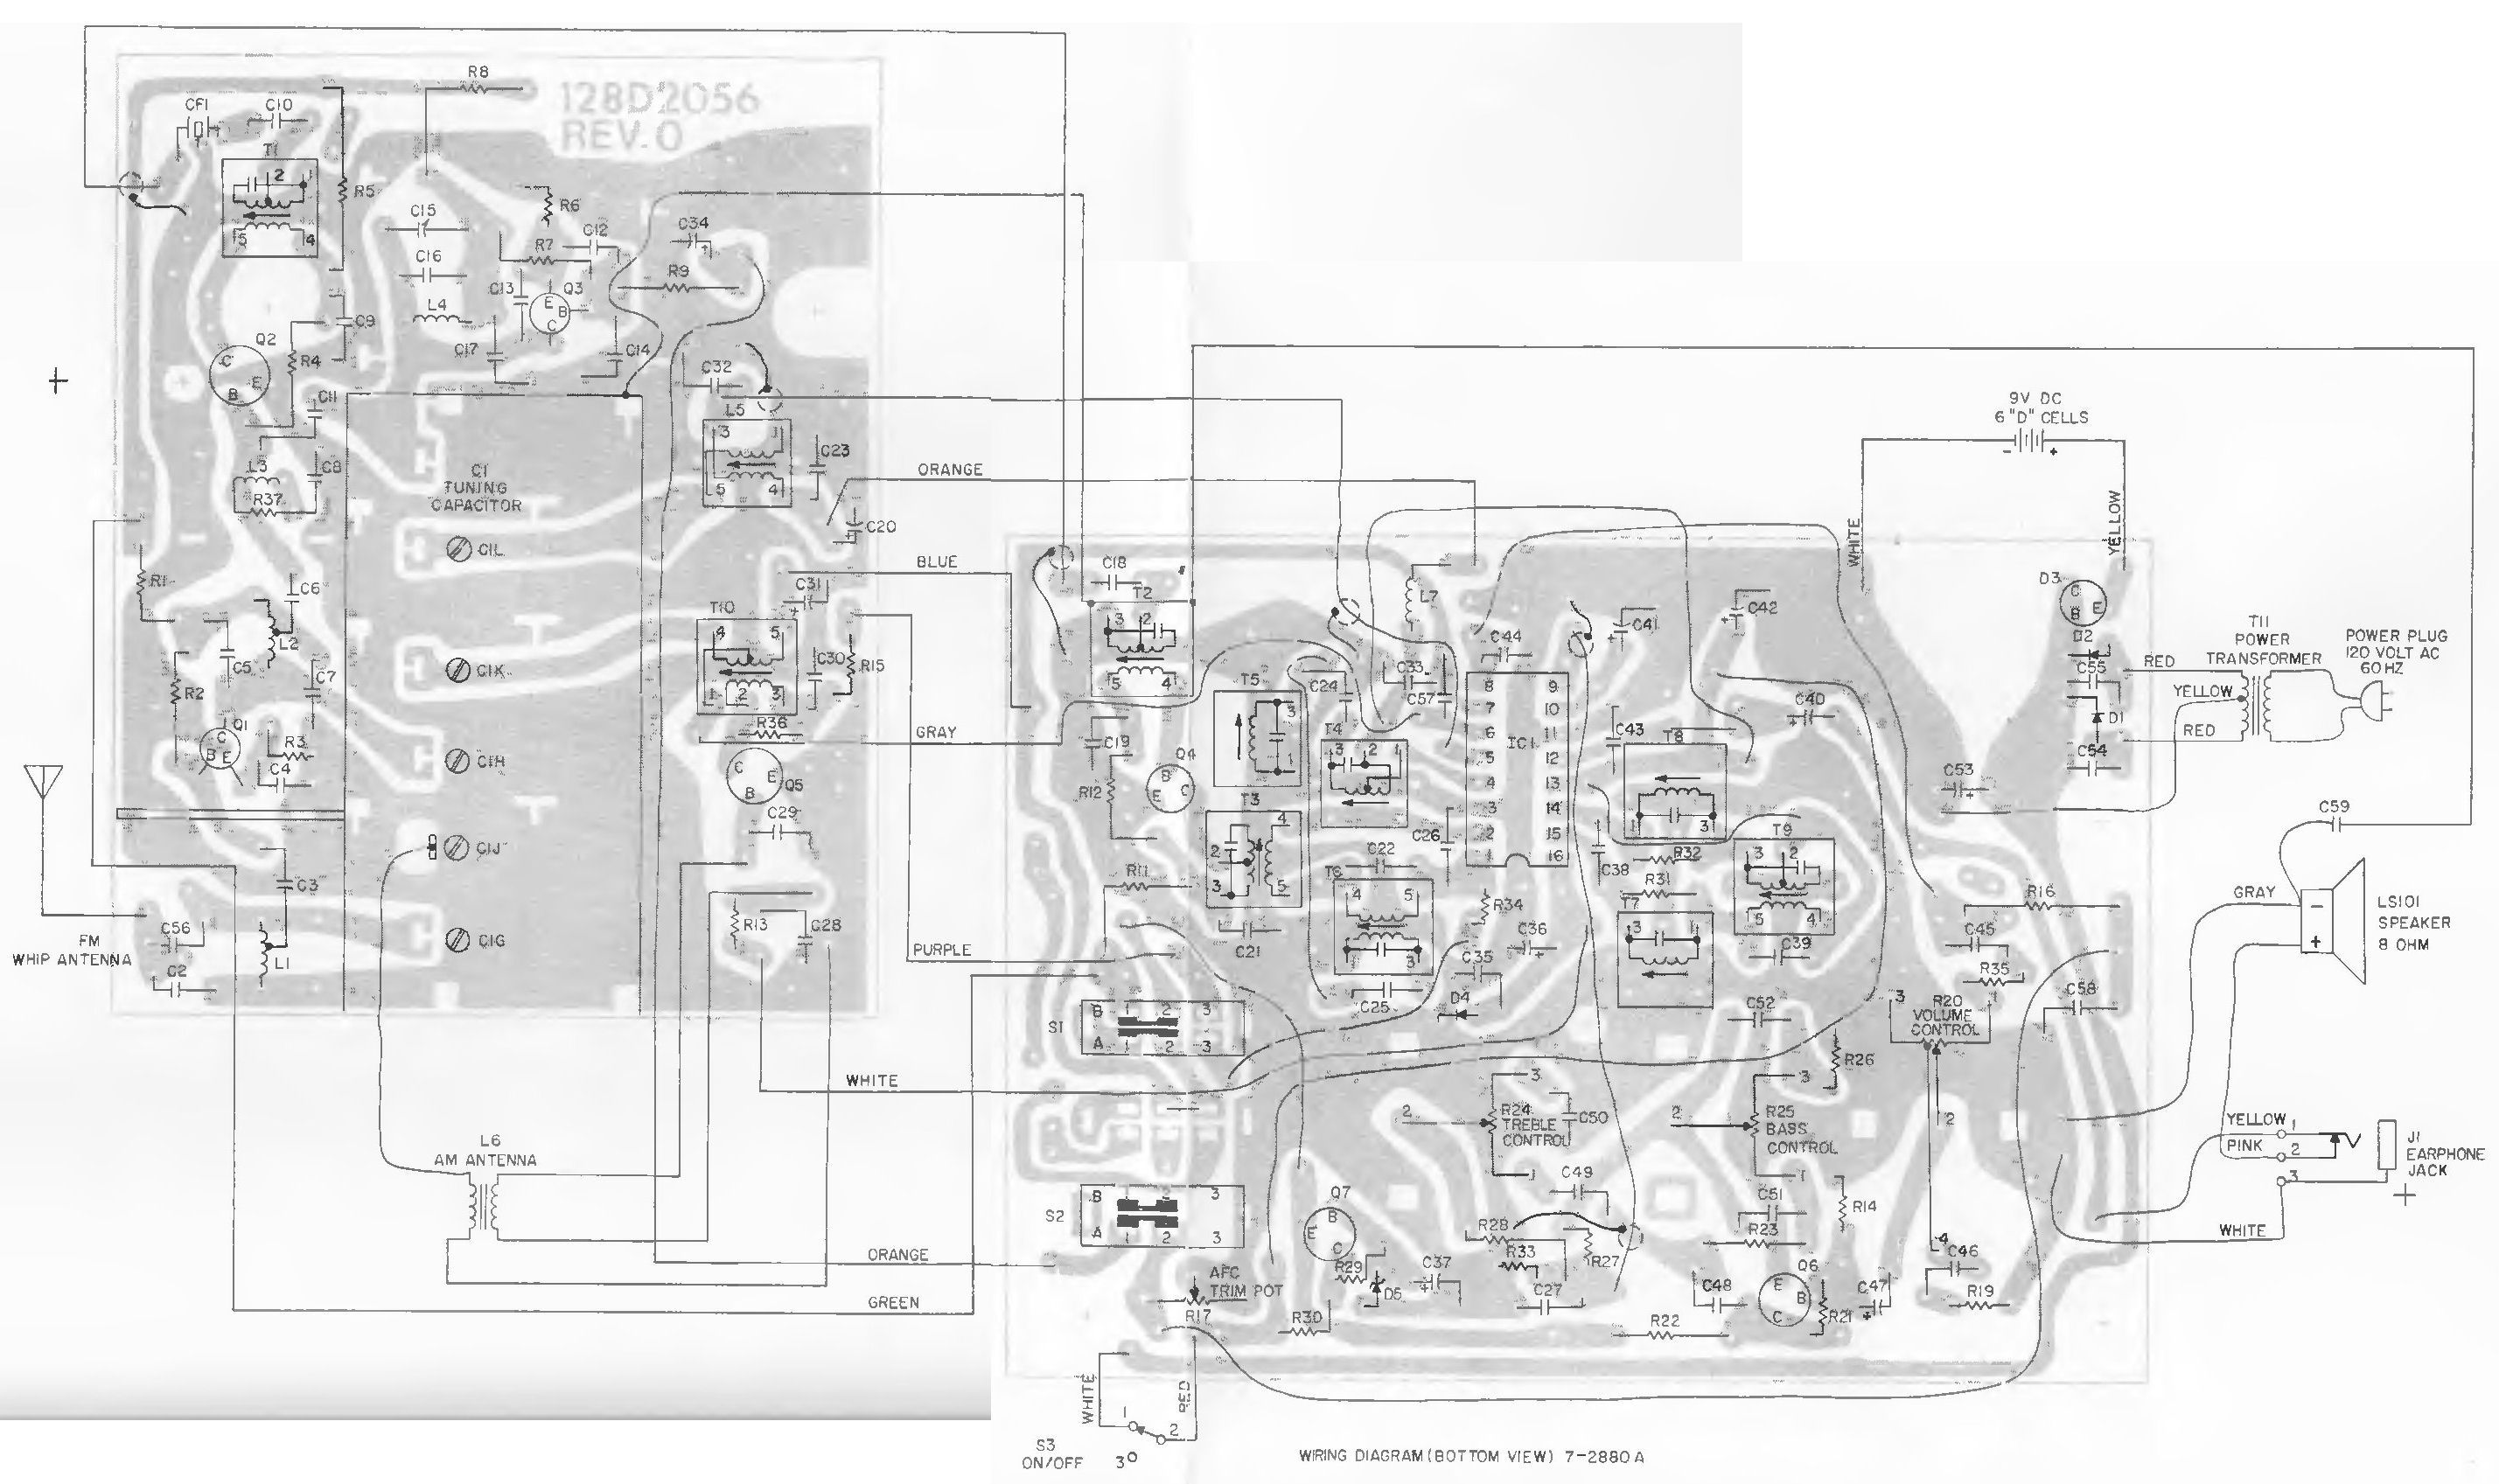 c 12 cat engine diagram wiring library. Black Bedroom Furniture Sets. Home Design Ideas